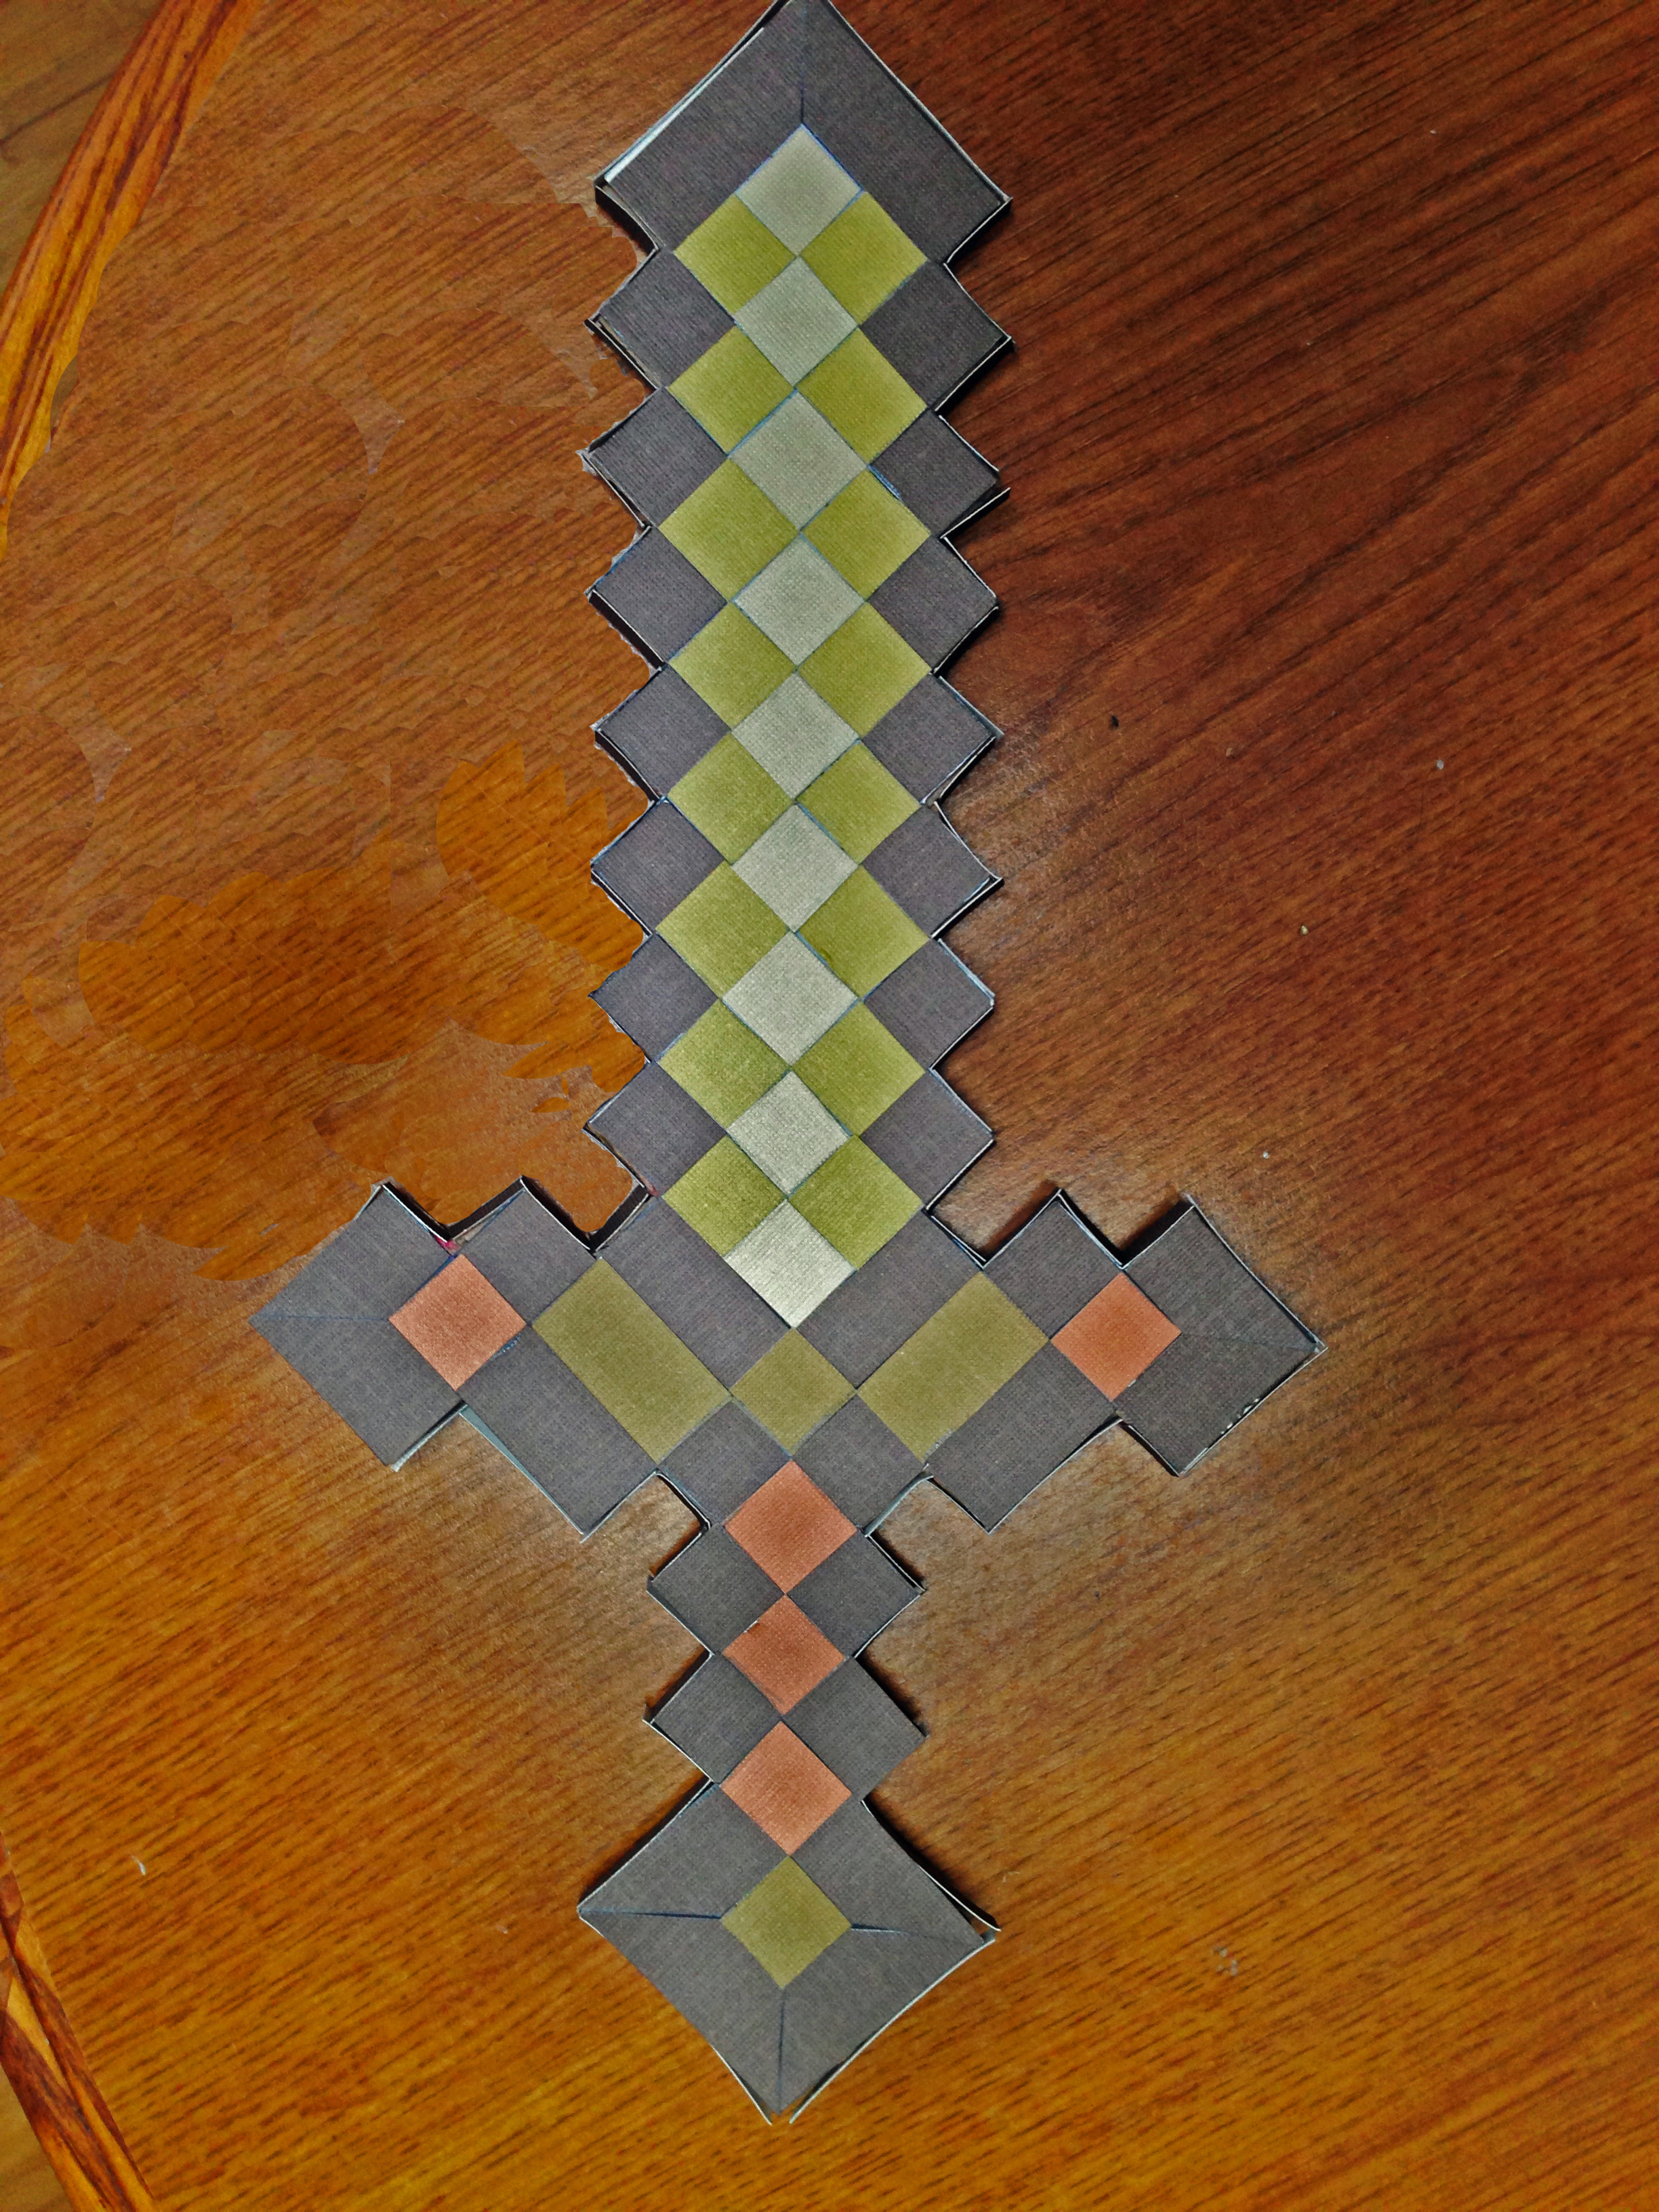 3 Minecraft Themed Paper Craft Projects Foldupsword Origami Sword Diagram